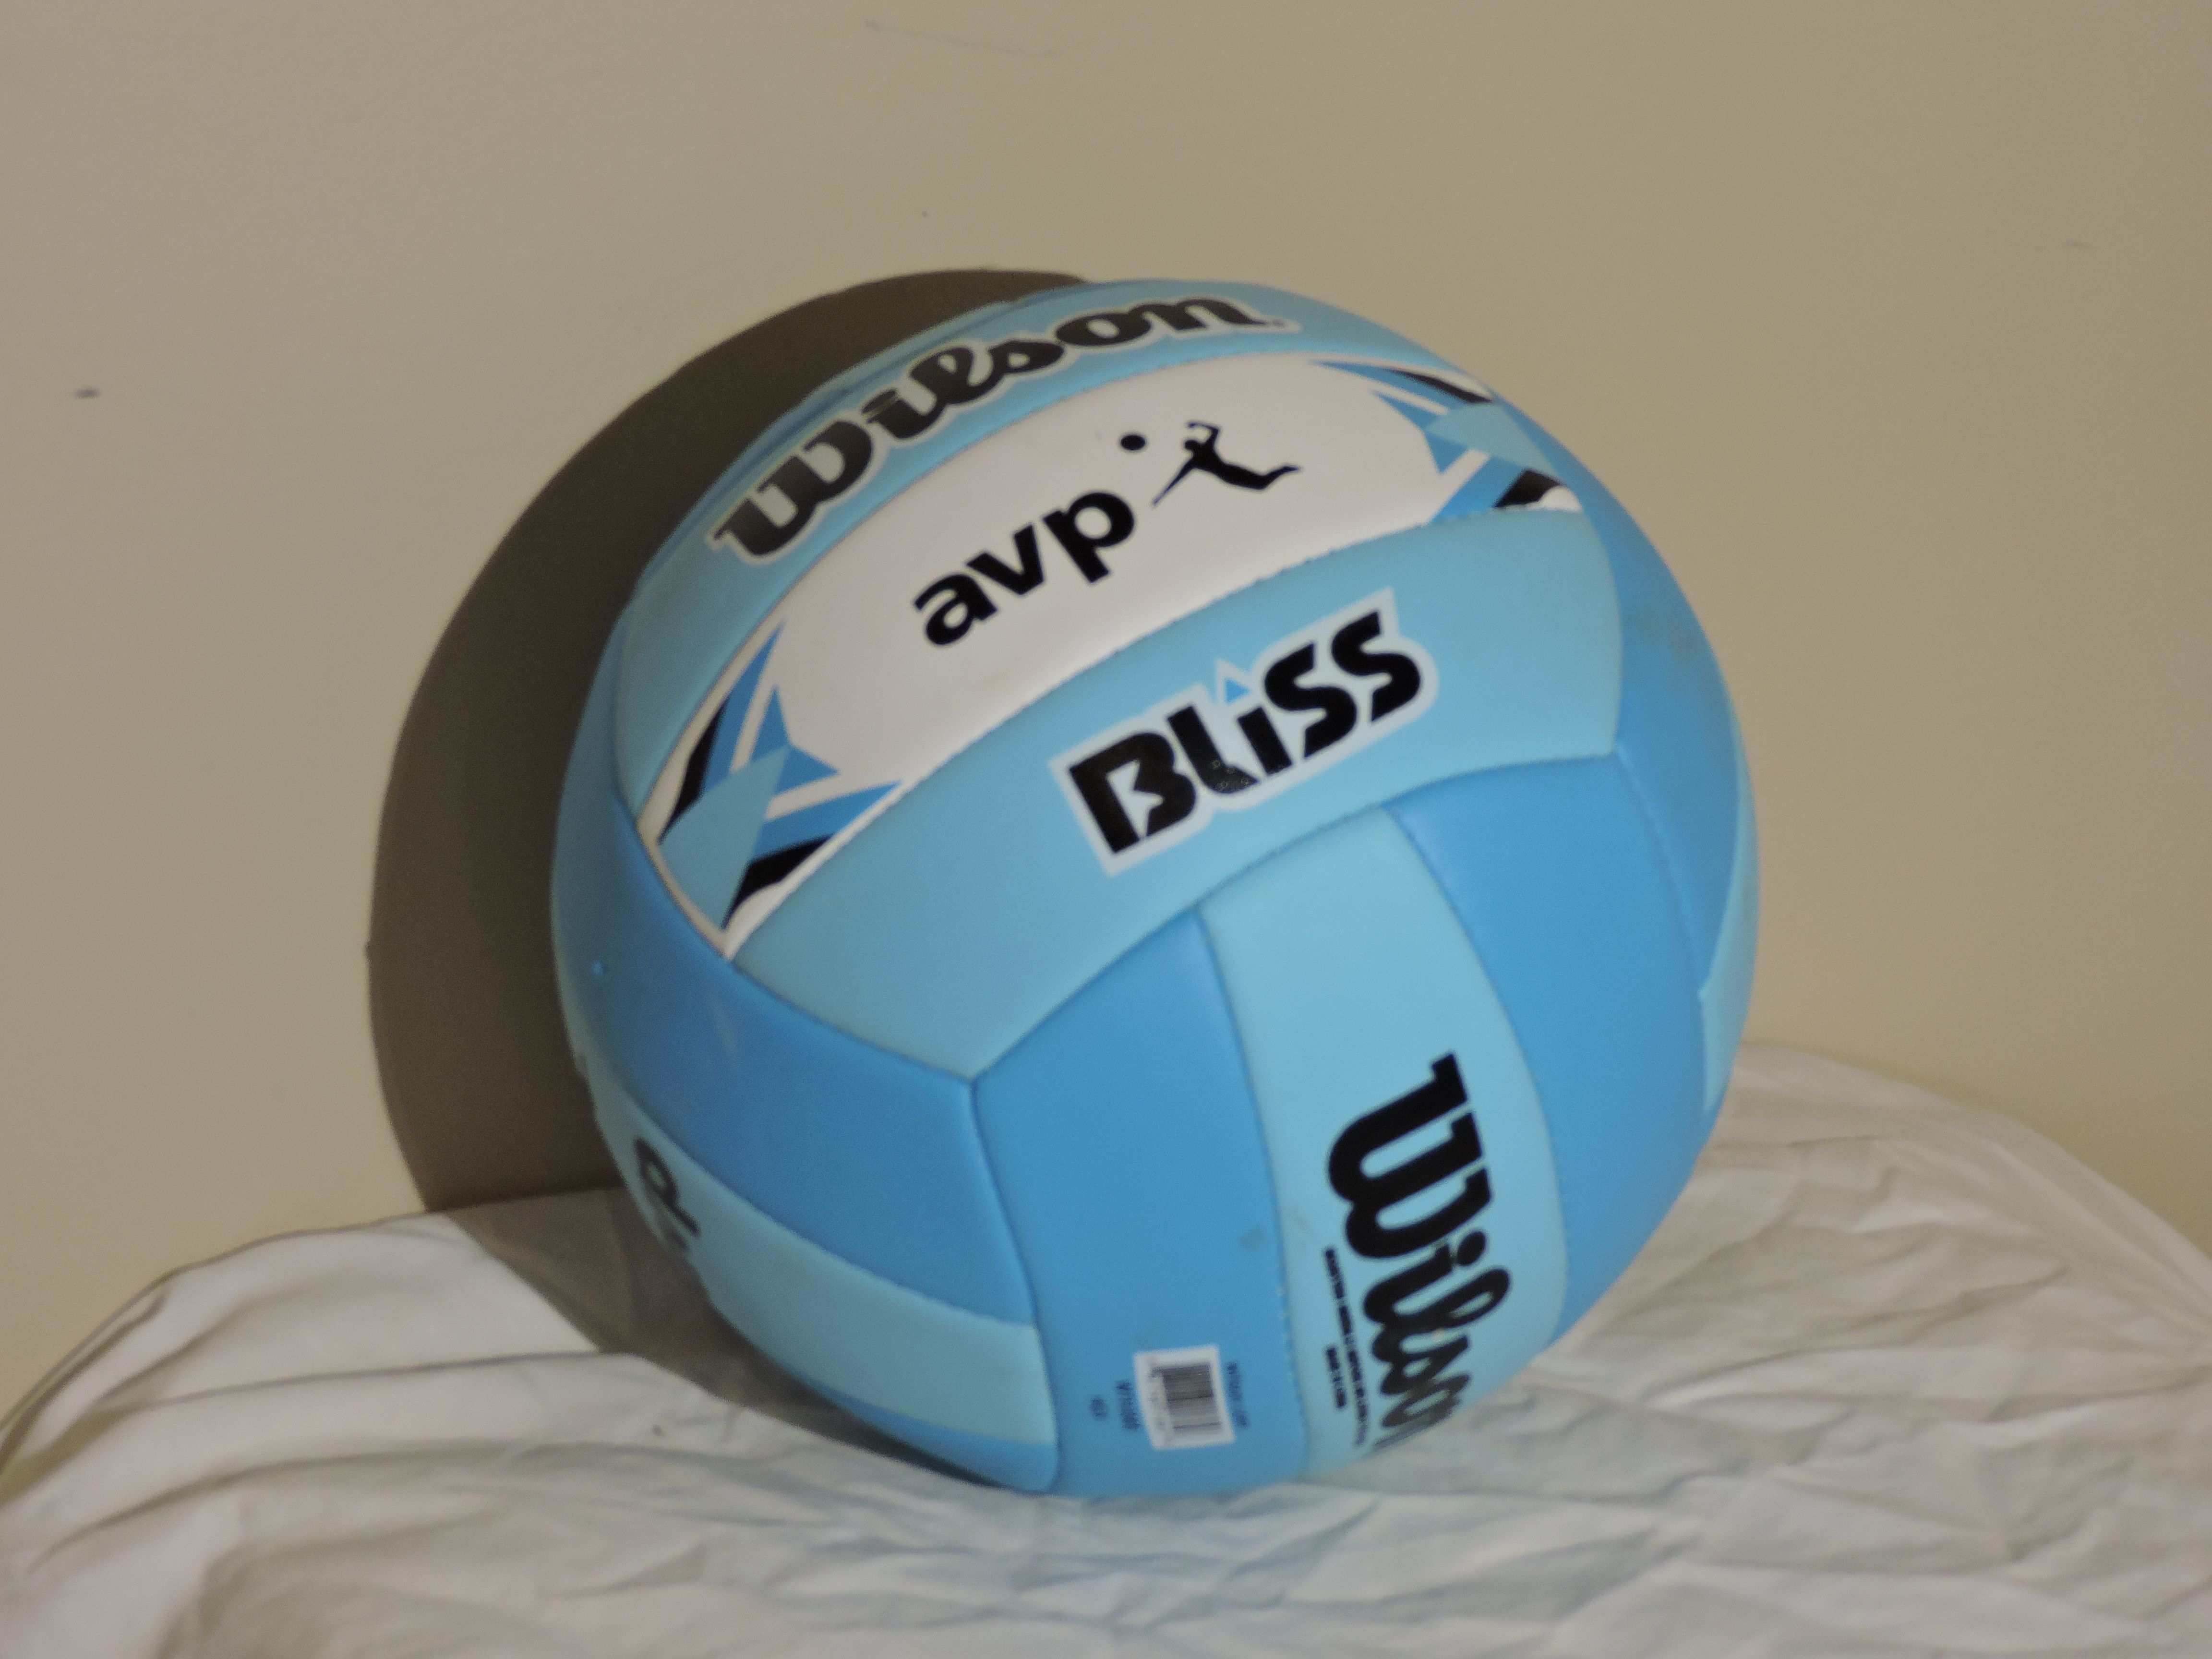 Volleyball Avp Wilson Like New Click Here Https Www Deansliquidation Com Product Page Volley Ball Avp Wilson Like New Volleyball Volley Ball